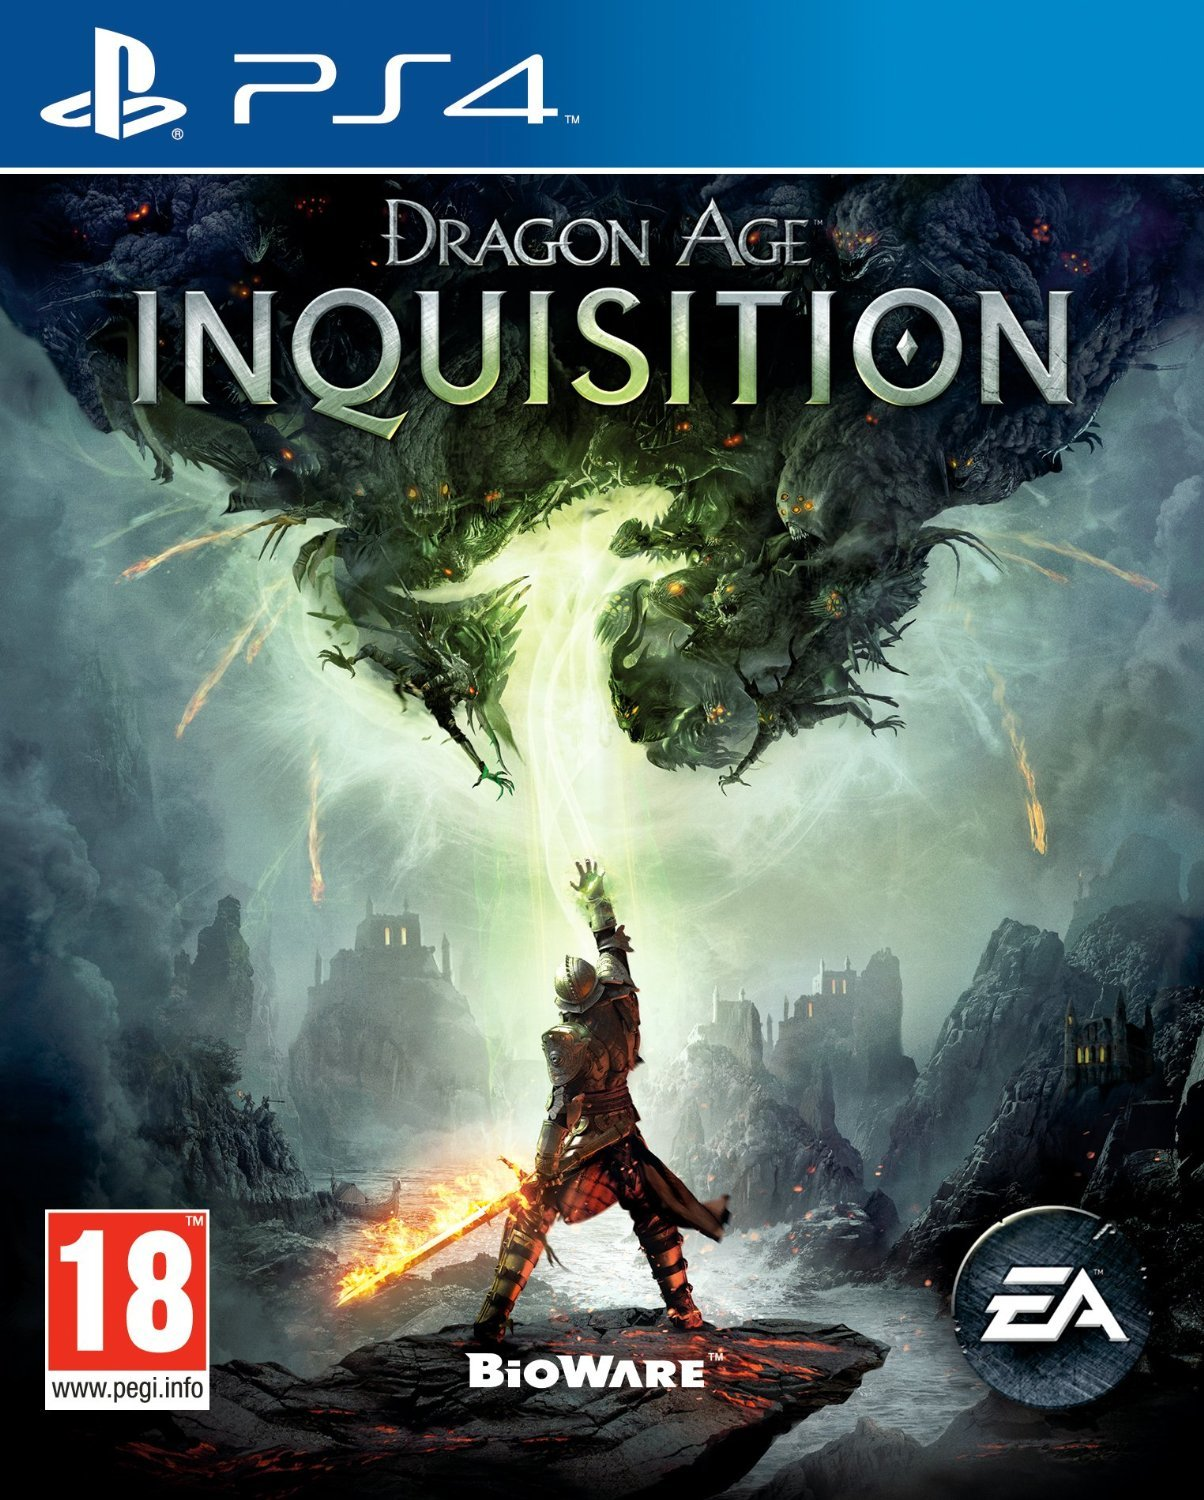 Dragon Age: Inquisition for PS4 image